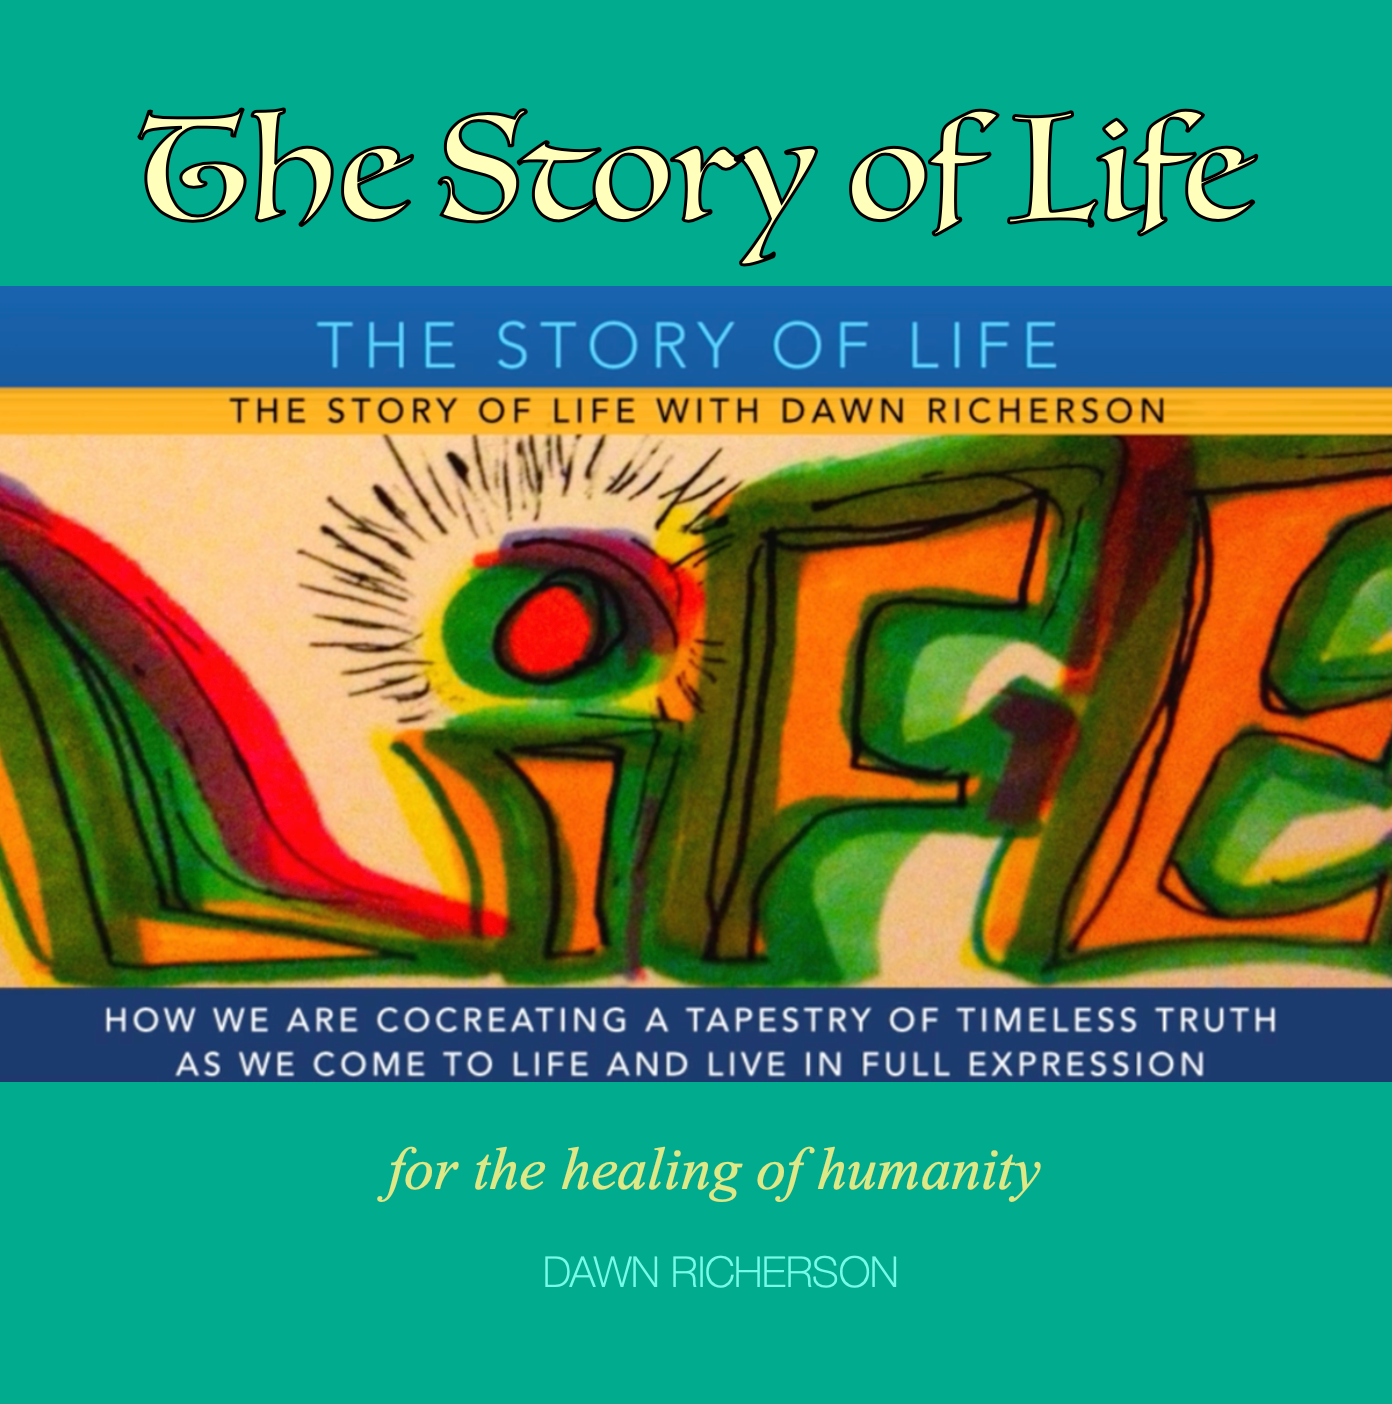 The Story of Life by Dawn Richerson